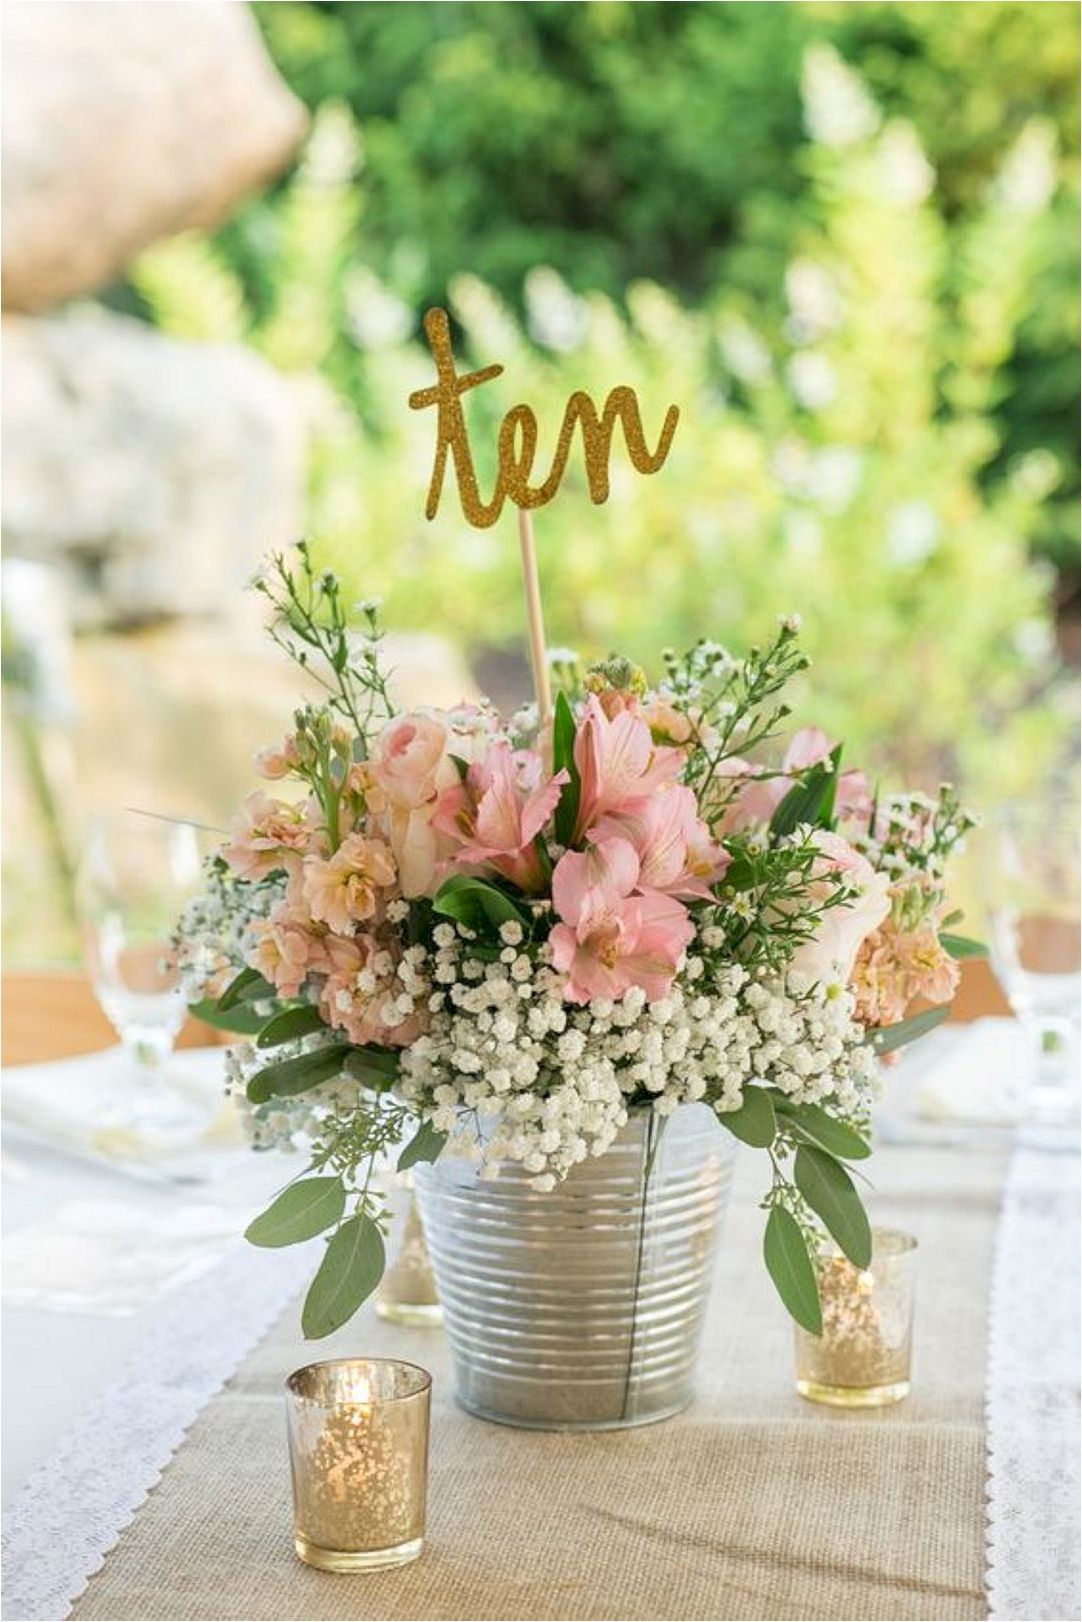 Cheap wedding centerpieces ideas 2017 wedding for Inexpensive wedding centrepieces